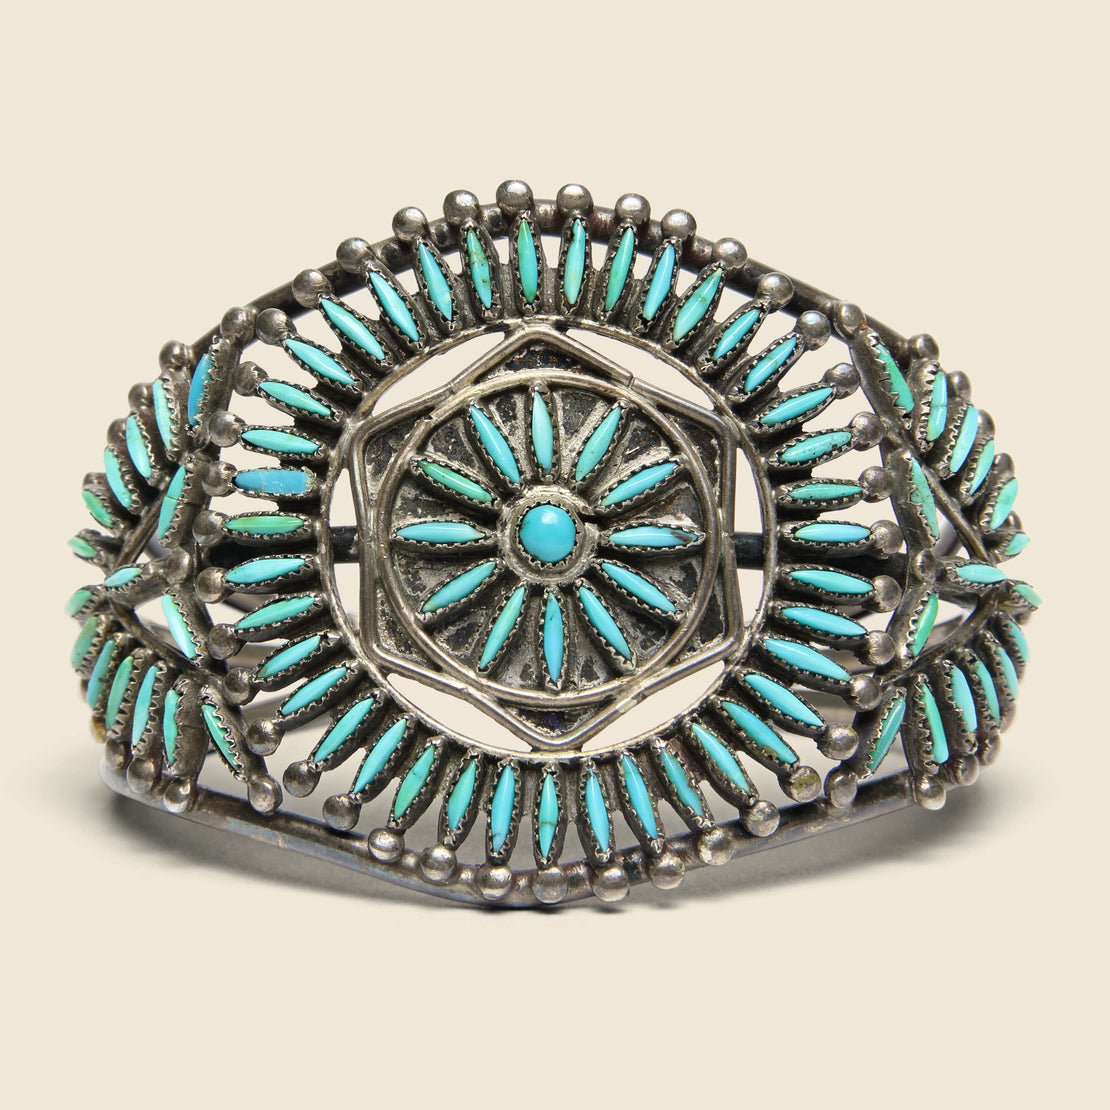 Vintage Sunburst Petit Point Zuni Cuff - Sterling/Turquoise